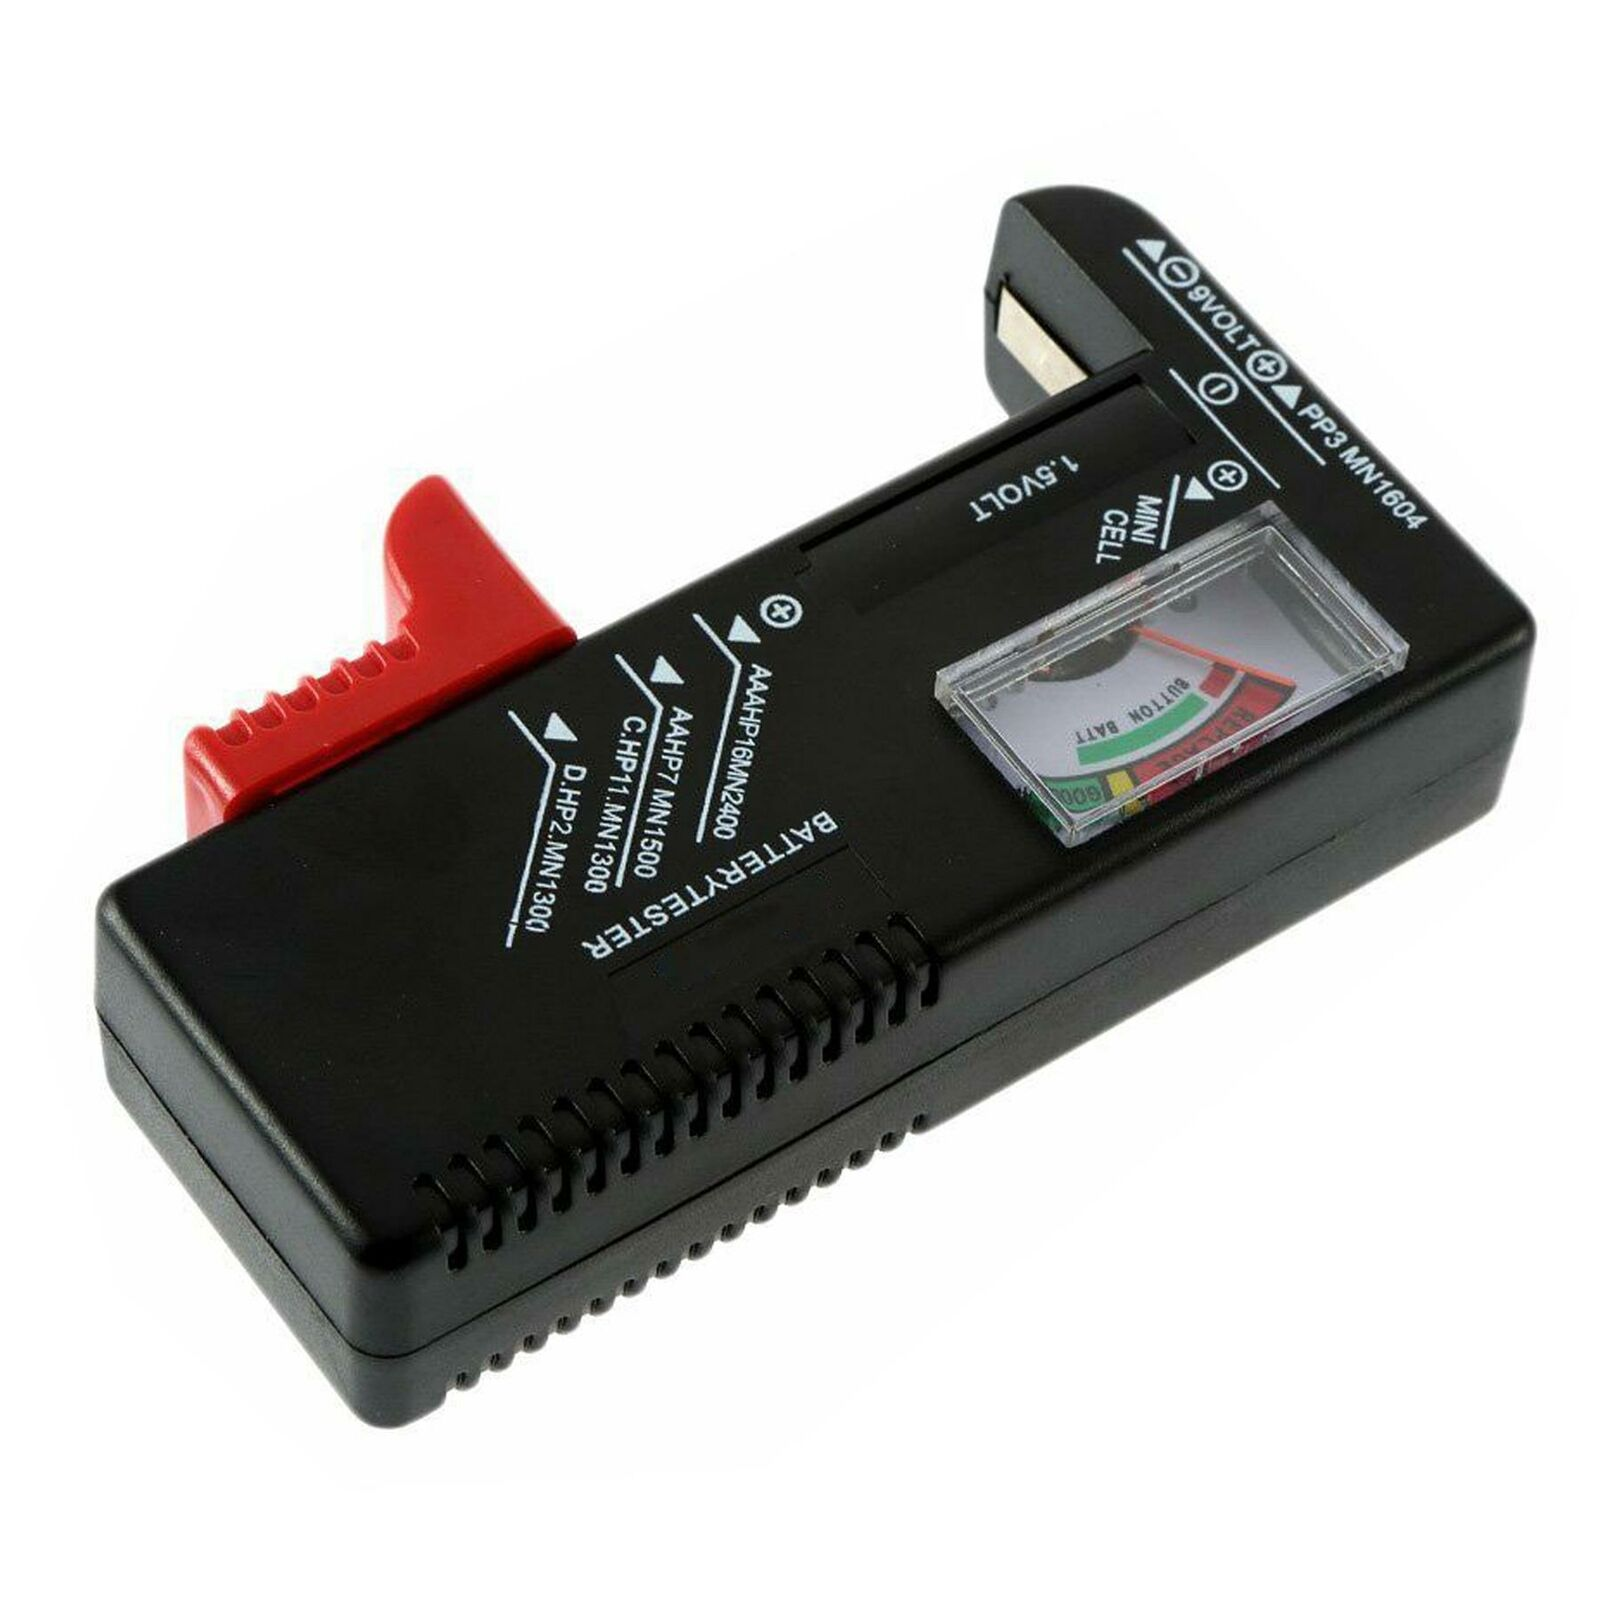 Universal Battery Tester Batteries Checker For 1.5V 9V AAA AA C D Cell Button